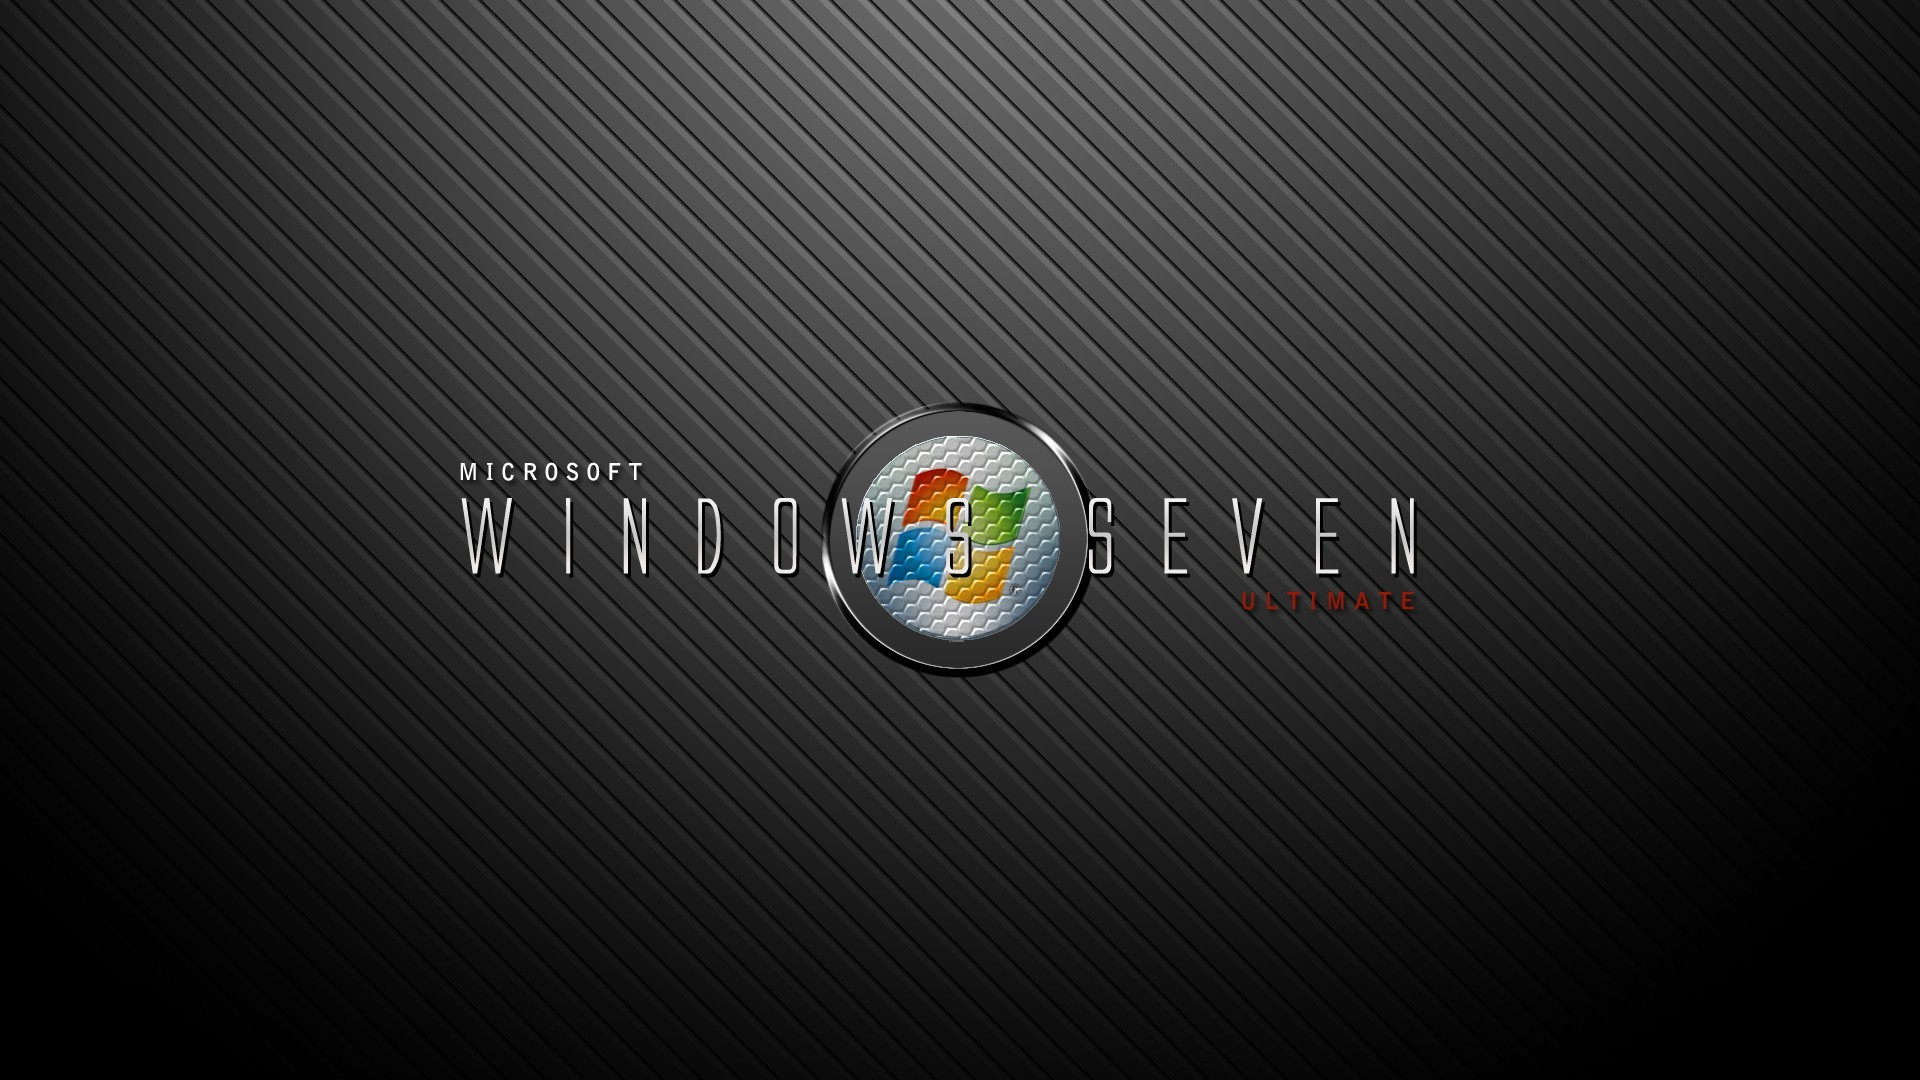 windows 7 ultimate wallpapers hd 61 images